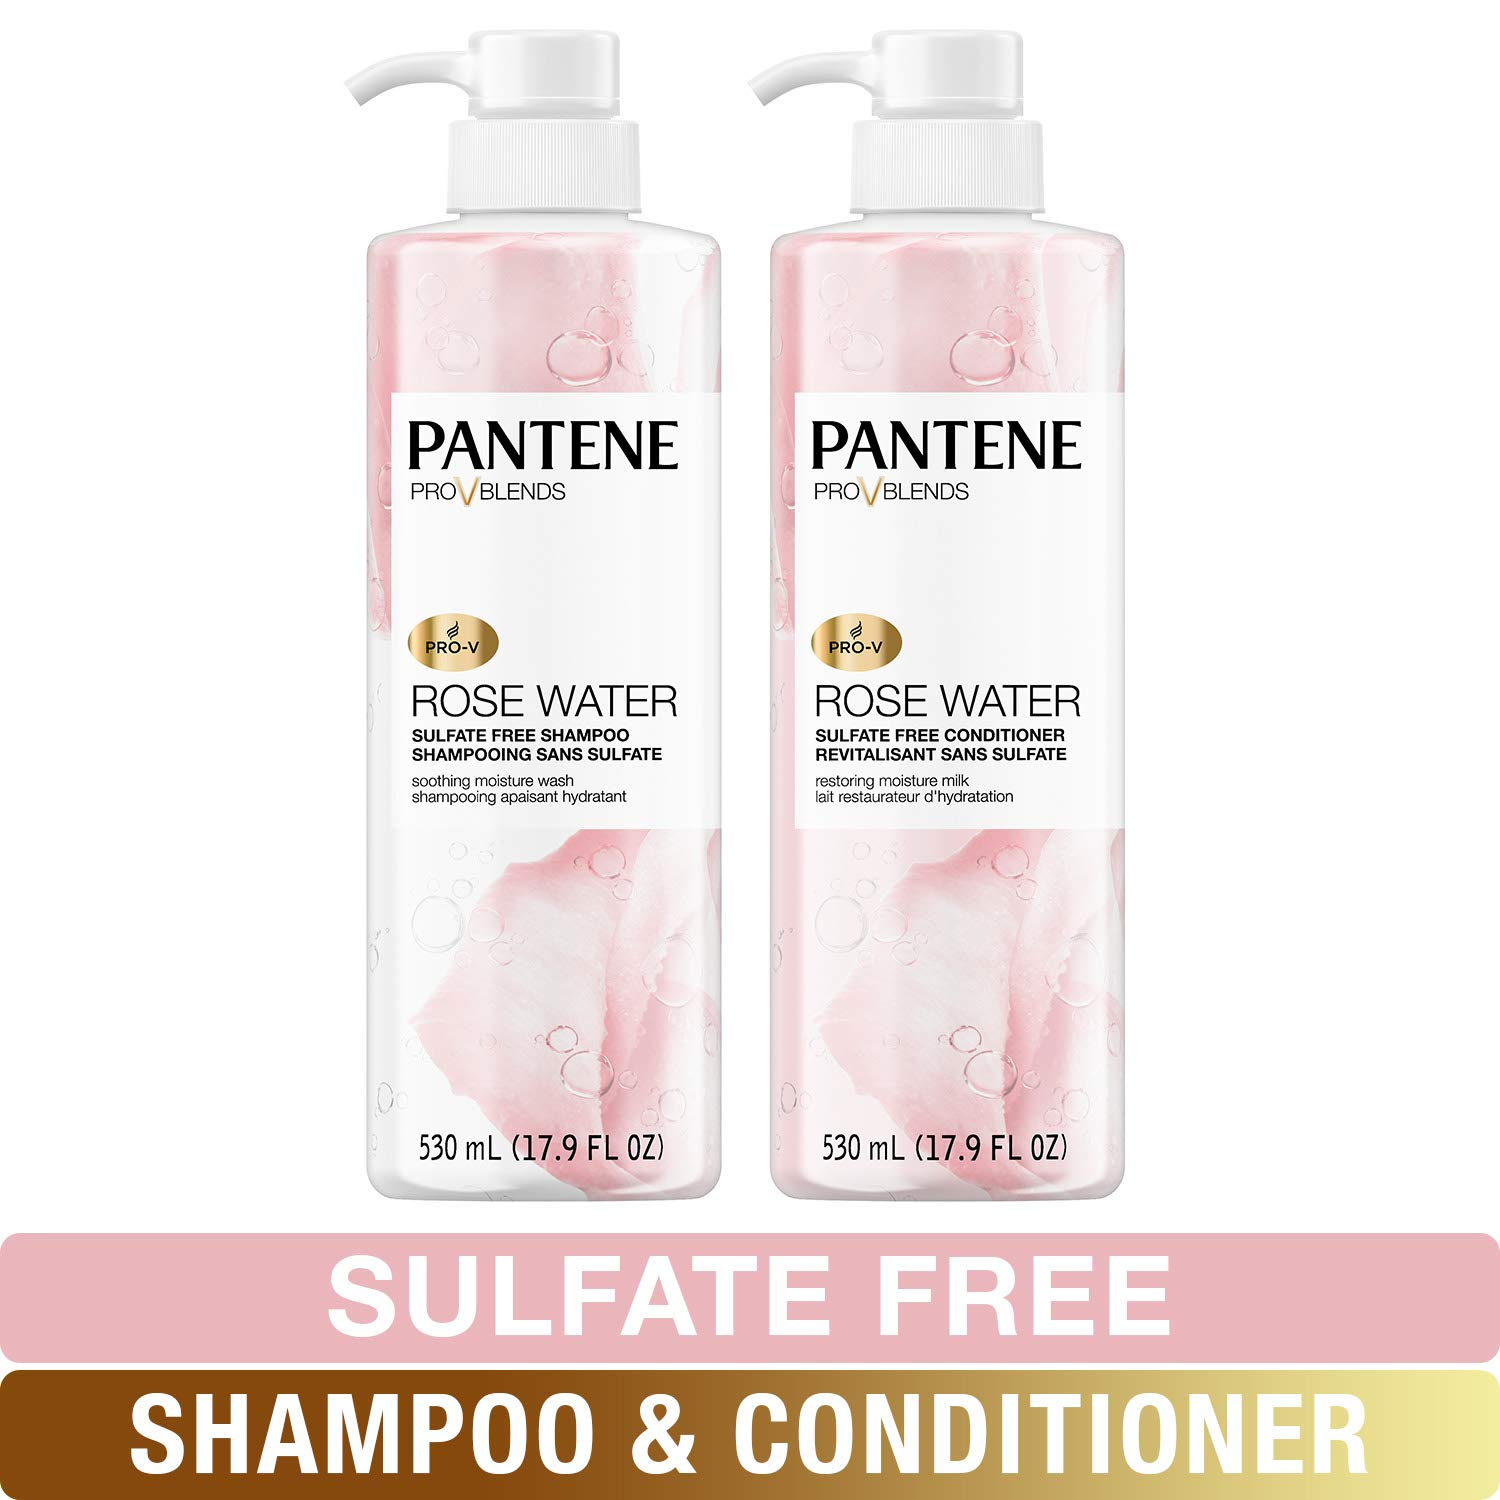 Pantene, Shampoo and Sulfate Free Conditioner Kit, Paraben and Dye Free, Pro-V Blends, Soothing Rose Water, 17.9 fl oz, Twin Pack